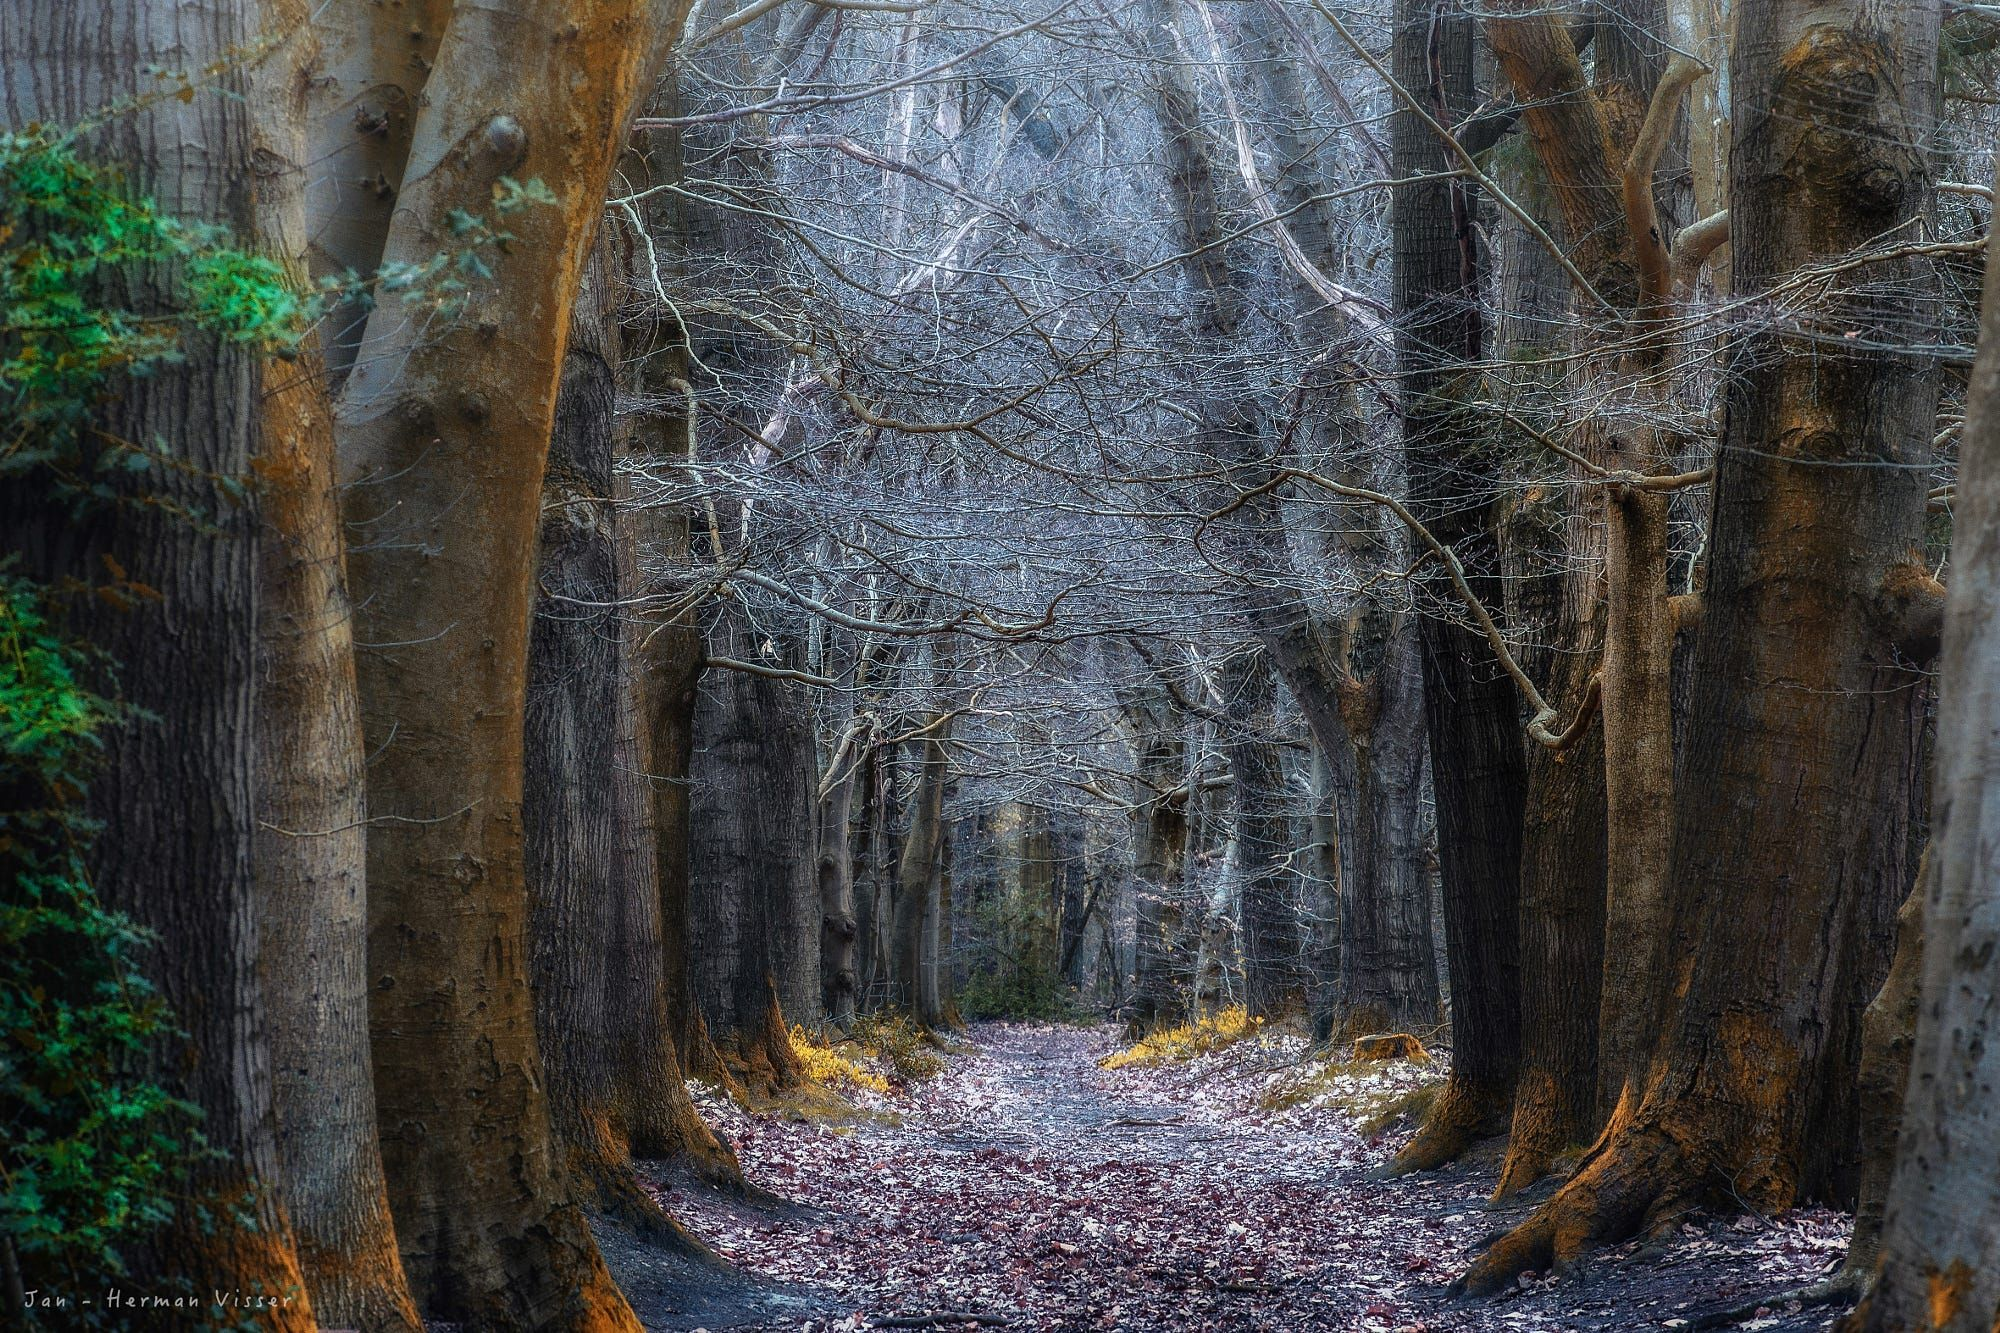 The path of the Hobbits by Jan - Herman Visser on 500px